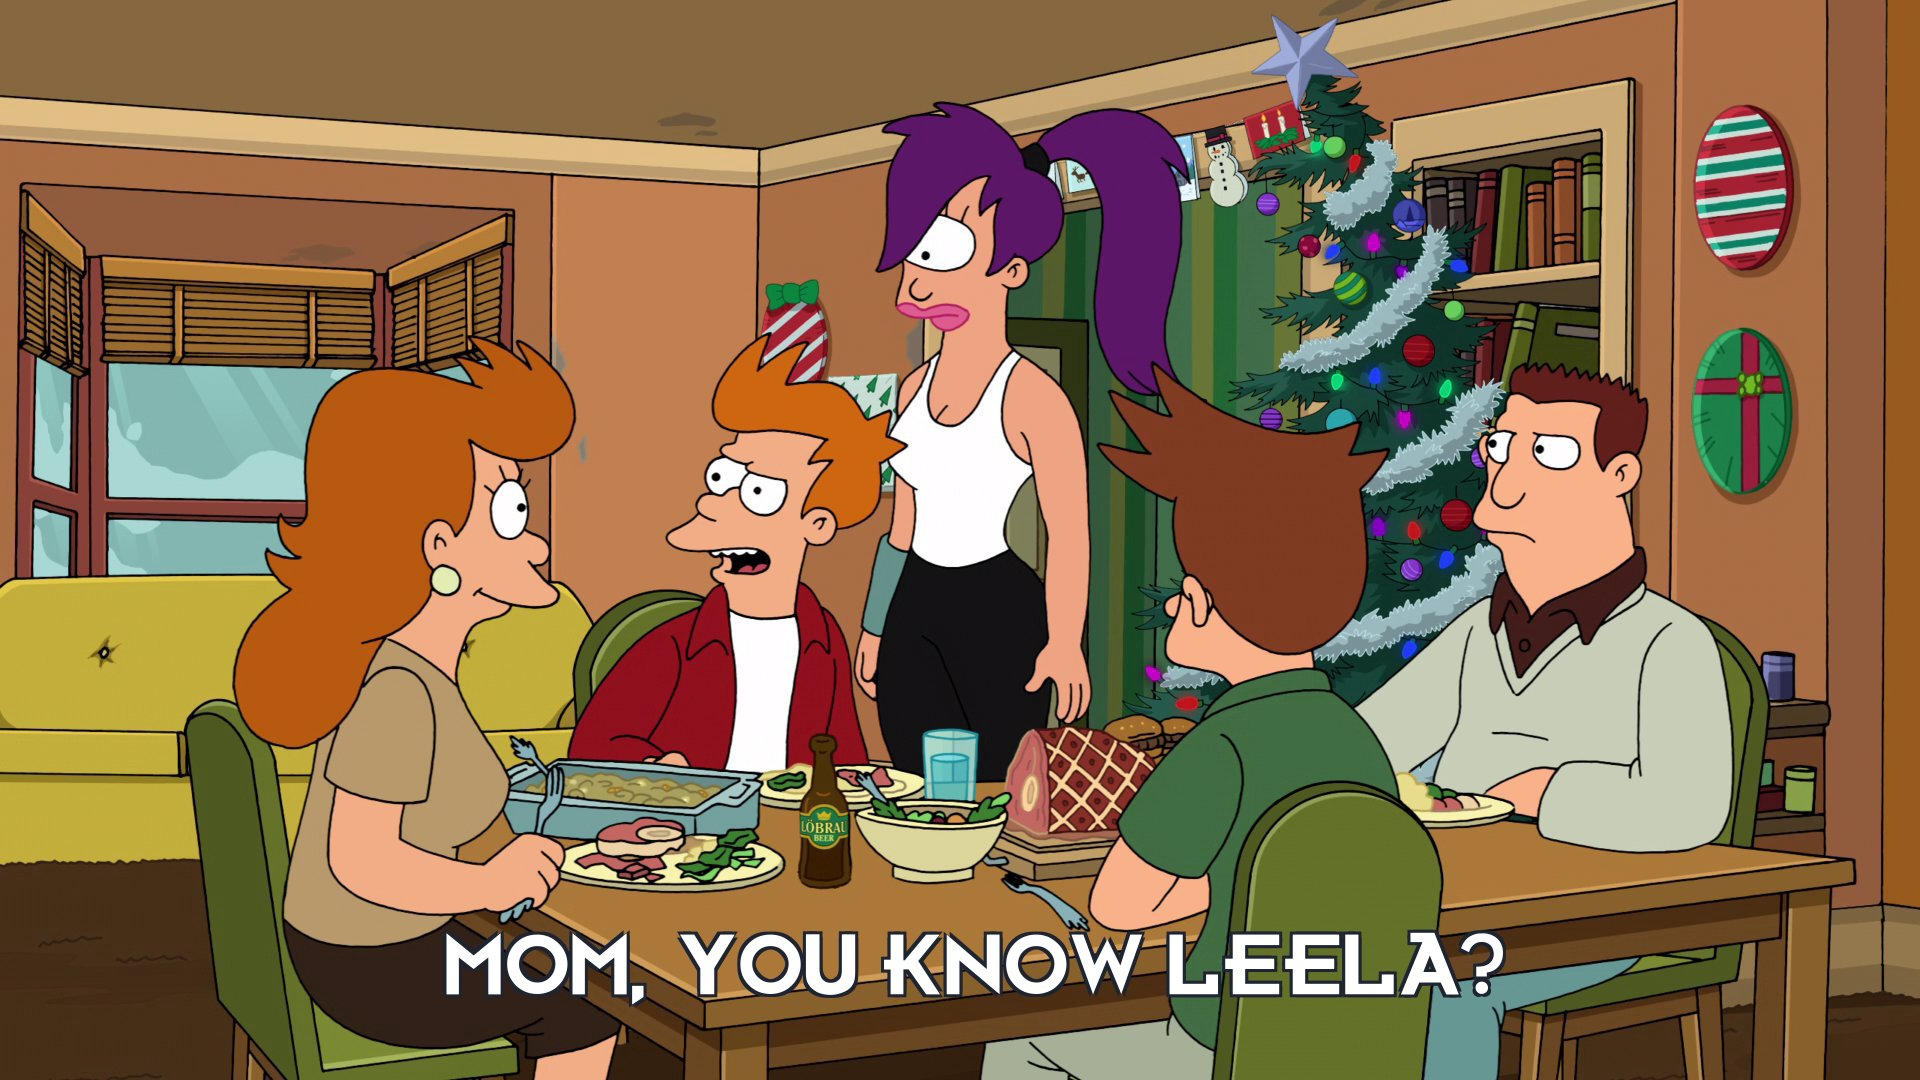 Philip J Fry: Mom, you know Leela?